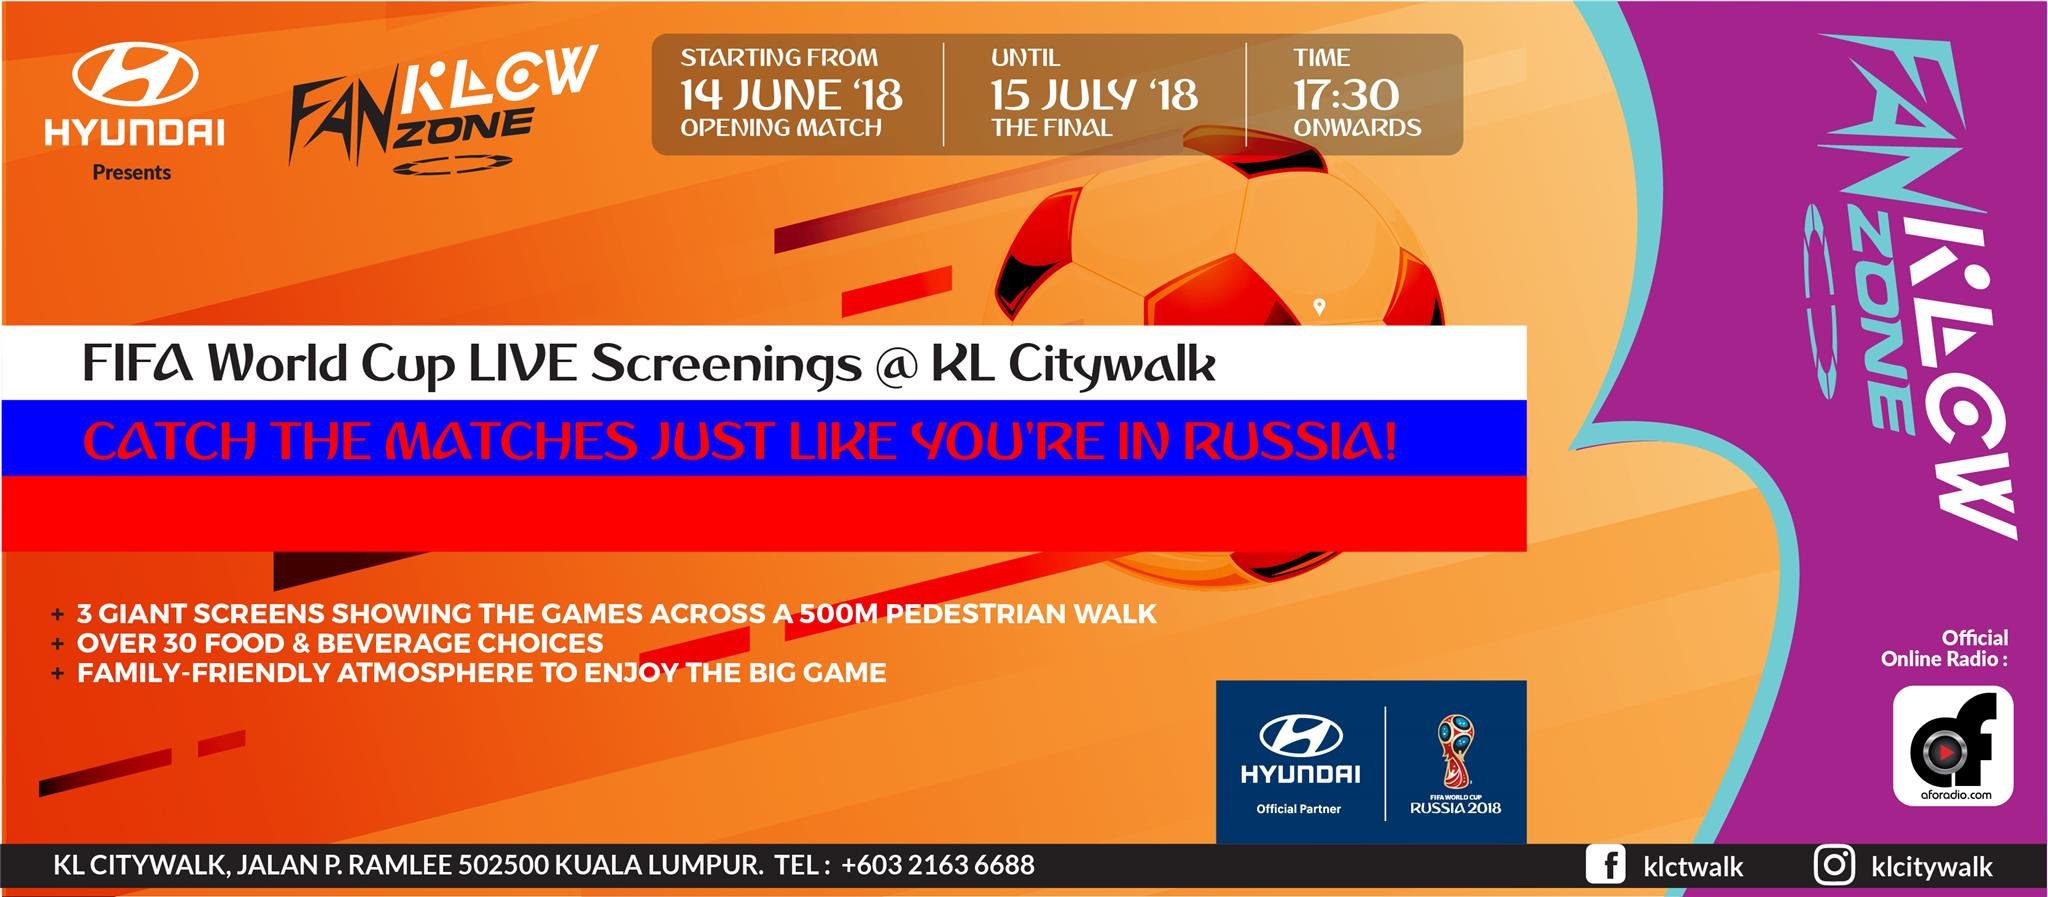 WATCH THE 2018 FIFA WORLD CUP RUSSIA LIVE AT KLCW FANZONE! 03c8738c67